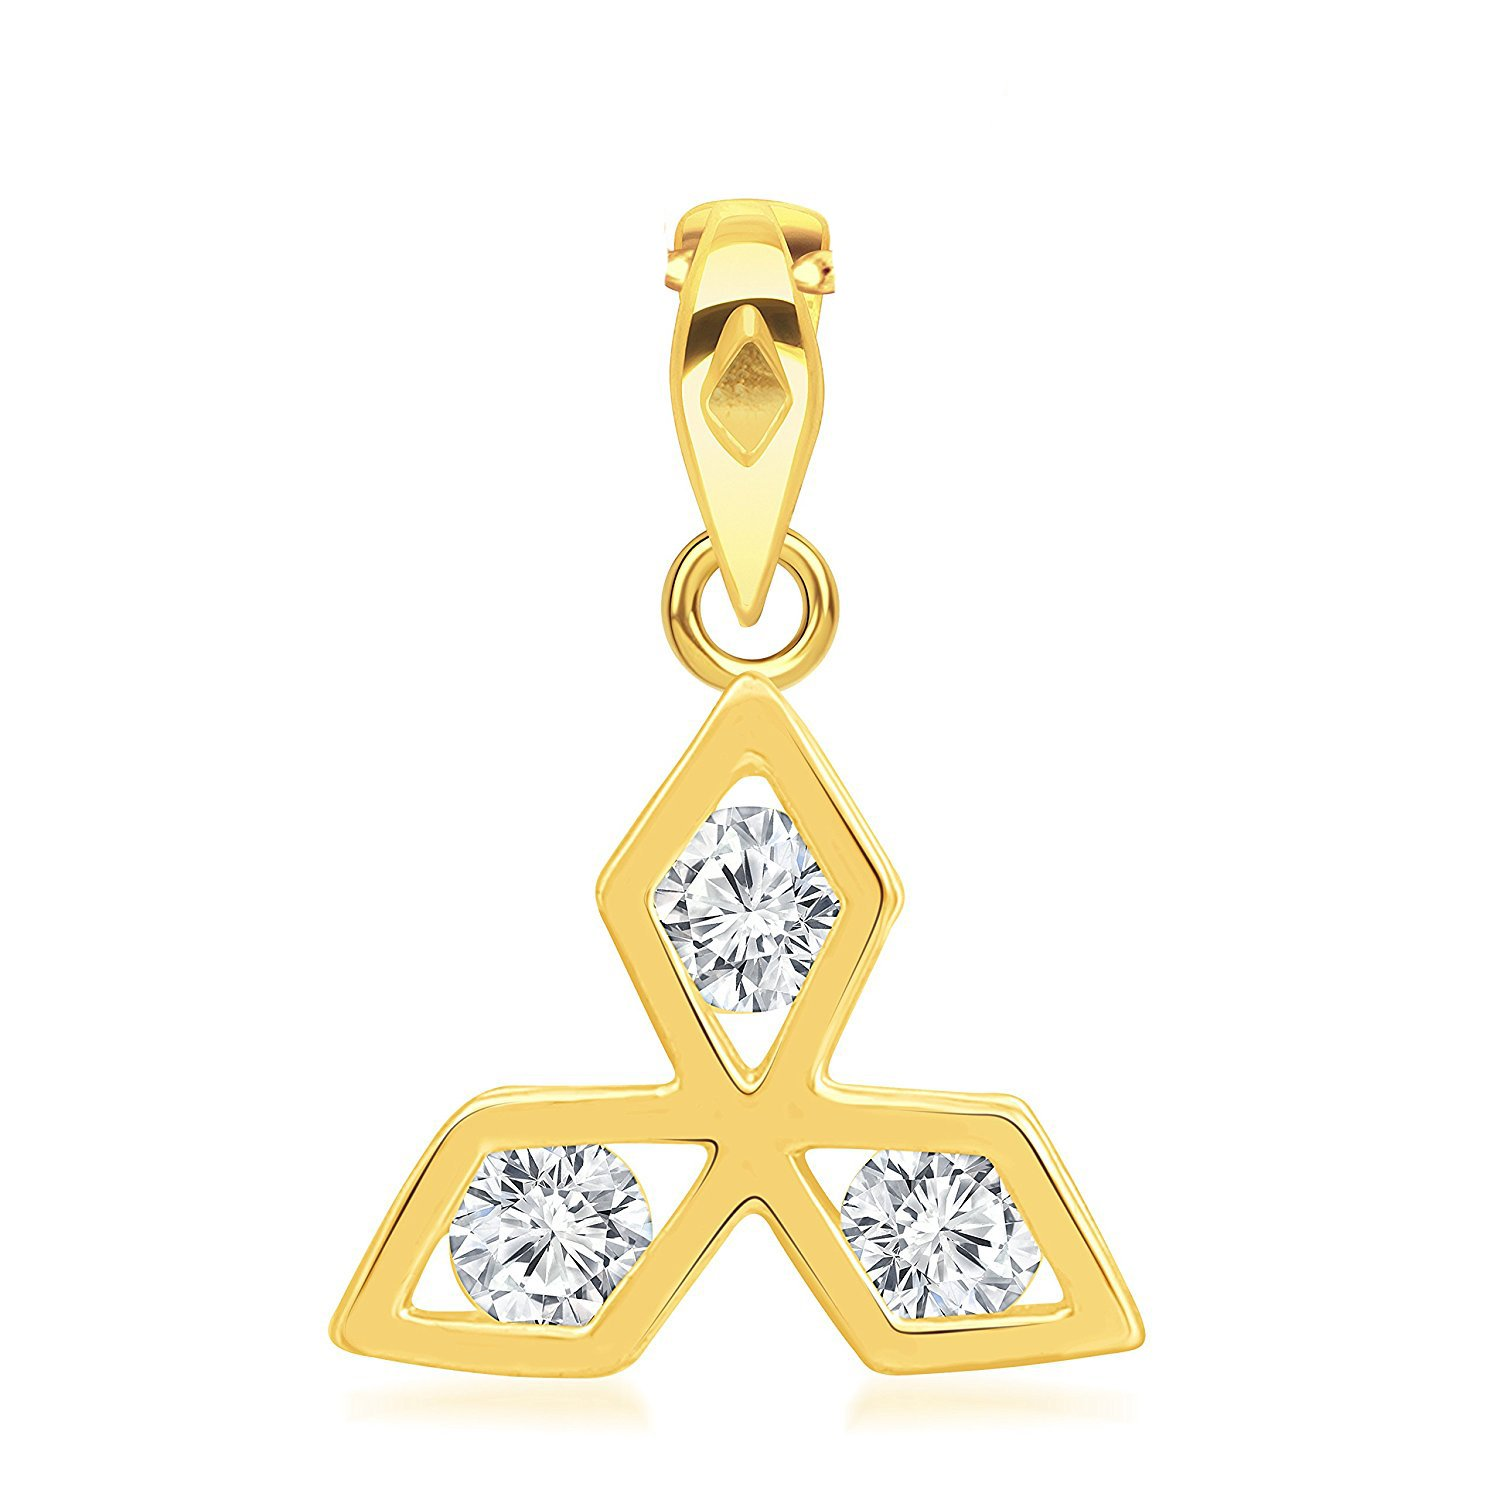 Ashley Jewels Simulated Diamond Studded Fashion Charm Pendant Necklace in 14K Yellow Gold Plated With Box Chain